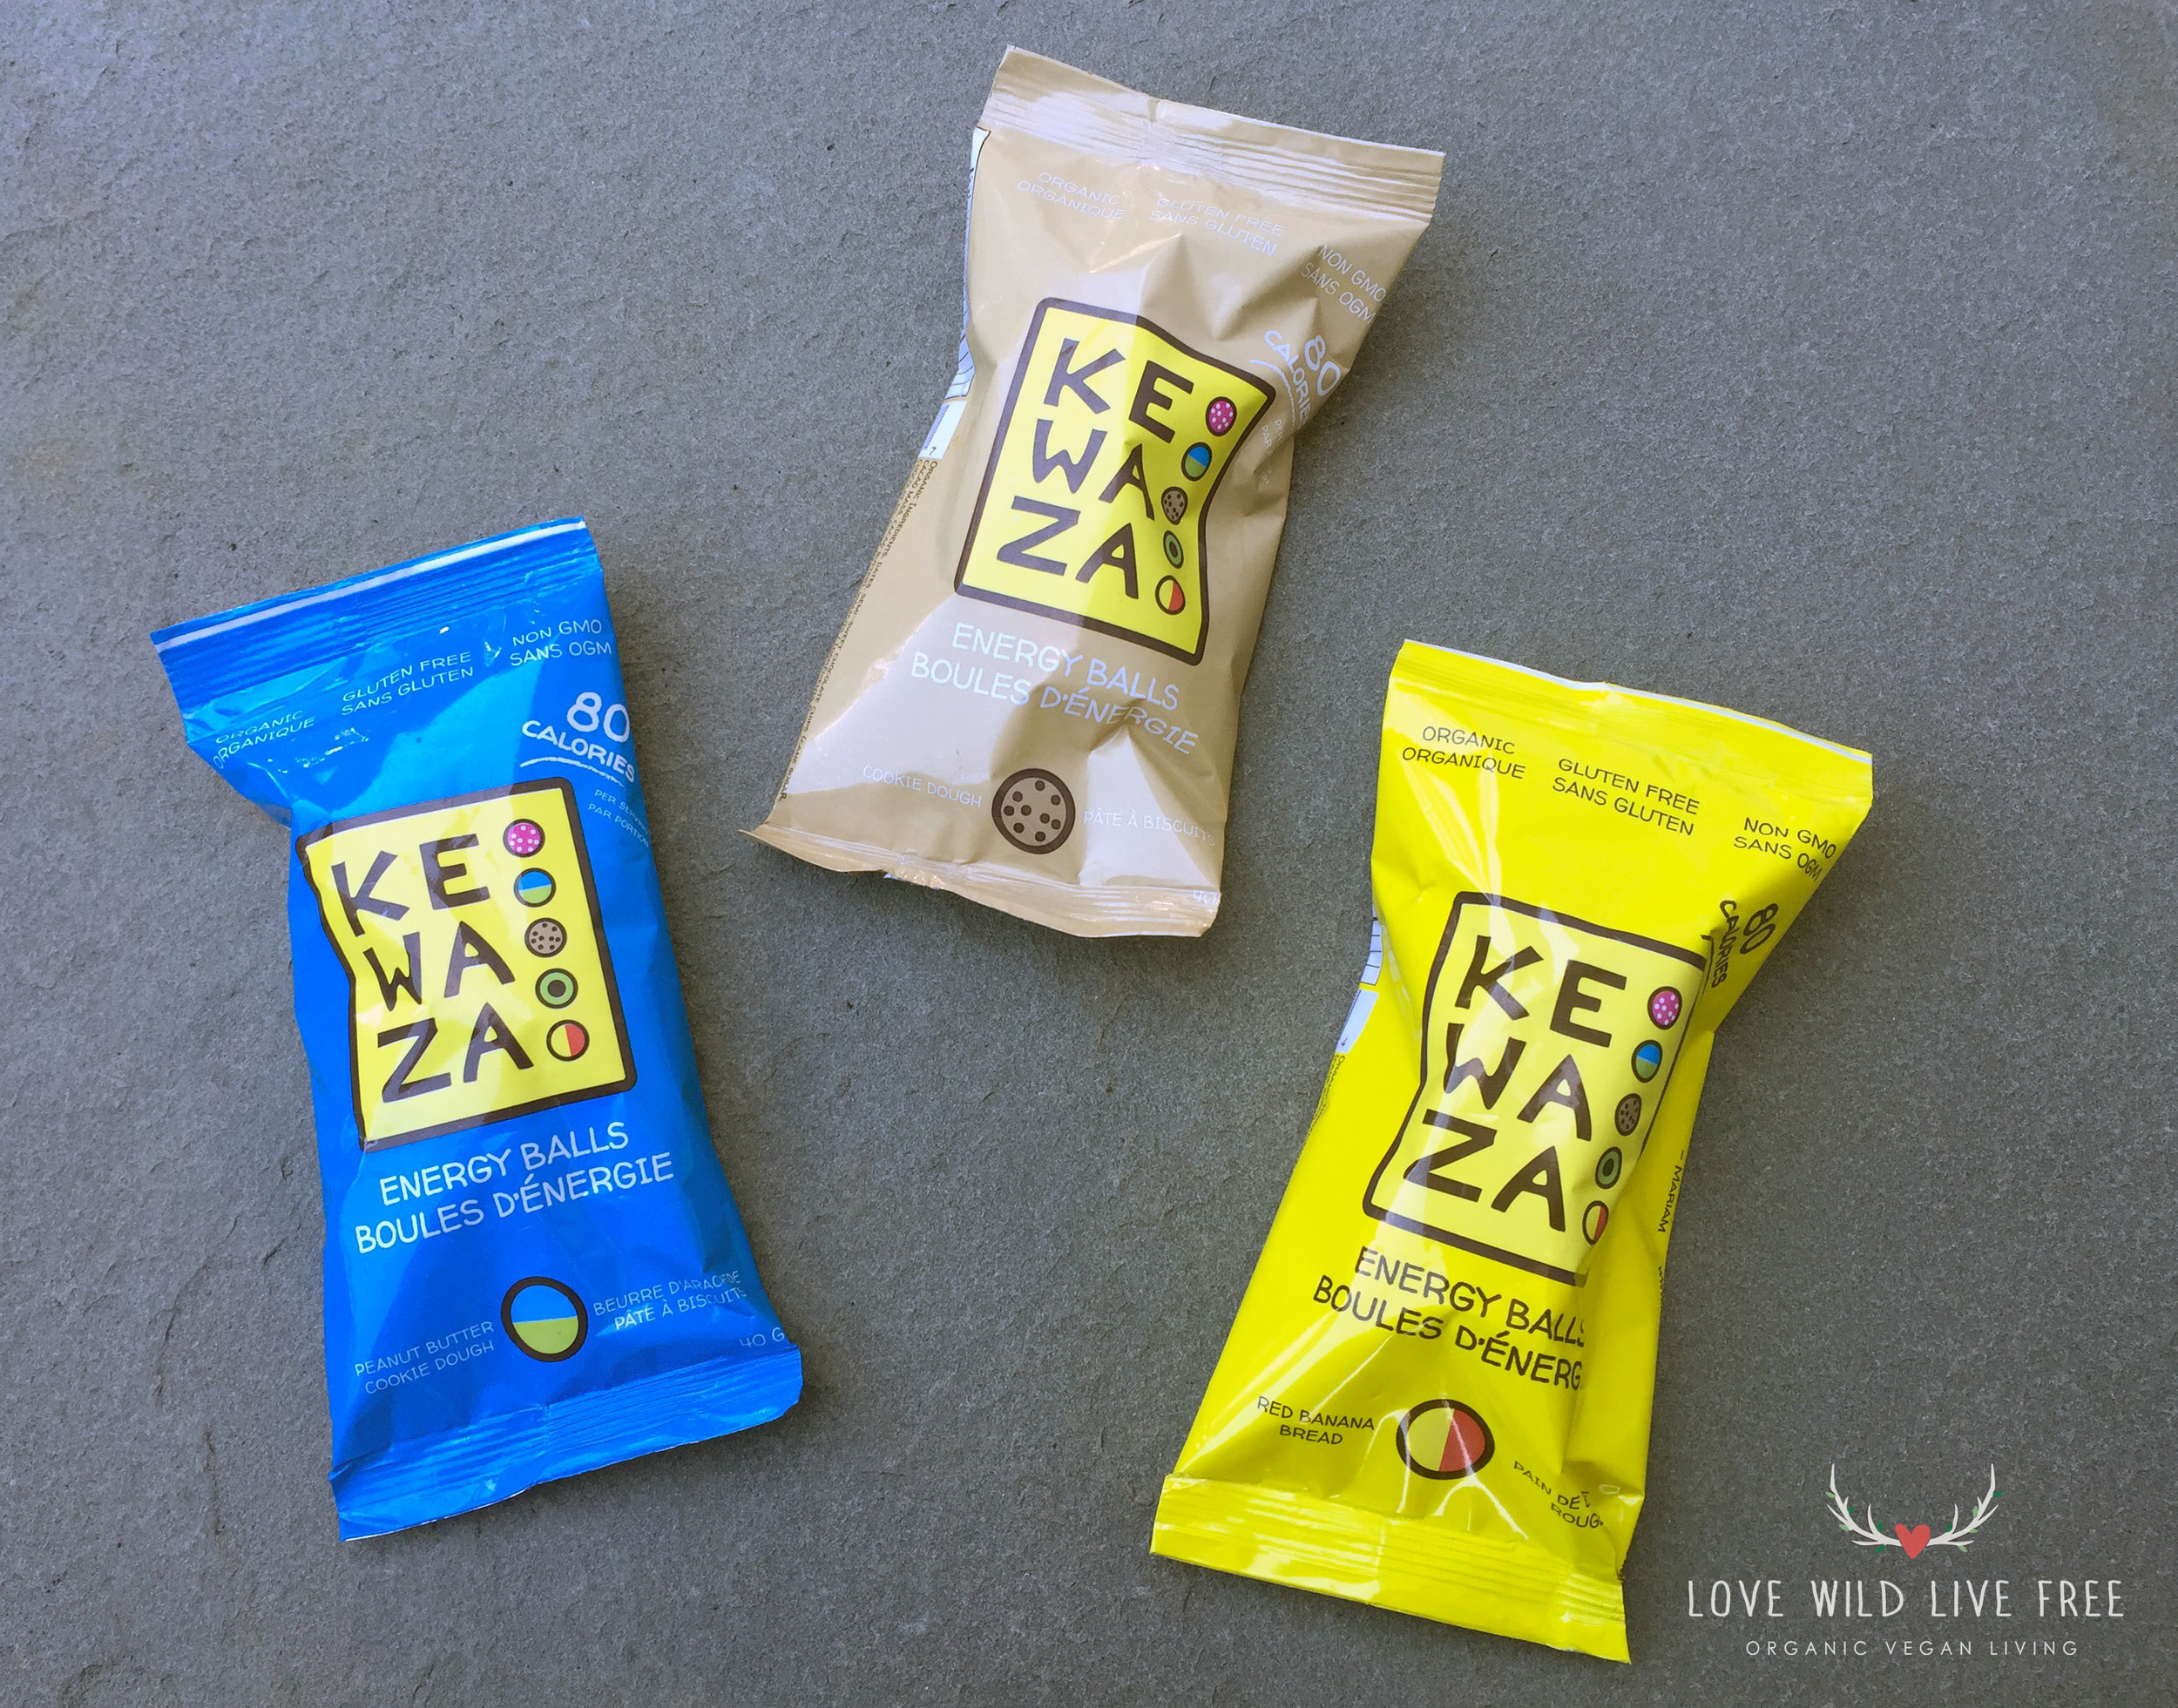 Pictured: Peanut Butter Cookie Dough,Cookie Dough and Red Banana Bread (from left to right).Scroll down for all of the details on how you can get your hands on a Kewaza prize pack including these vegan energy balls!